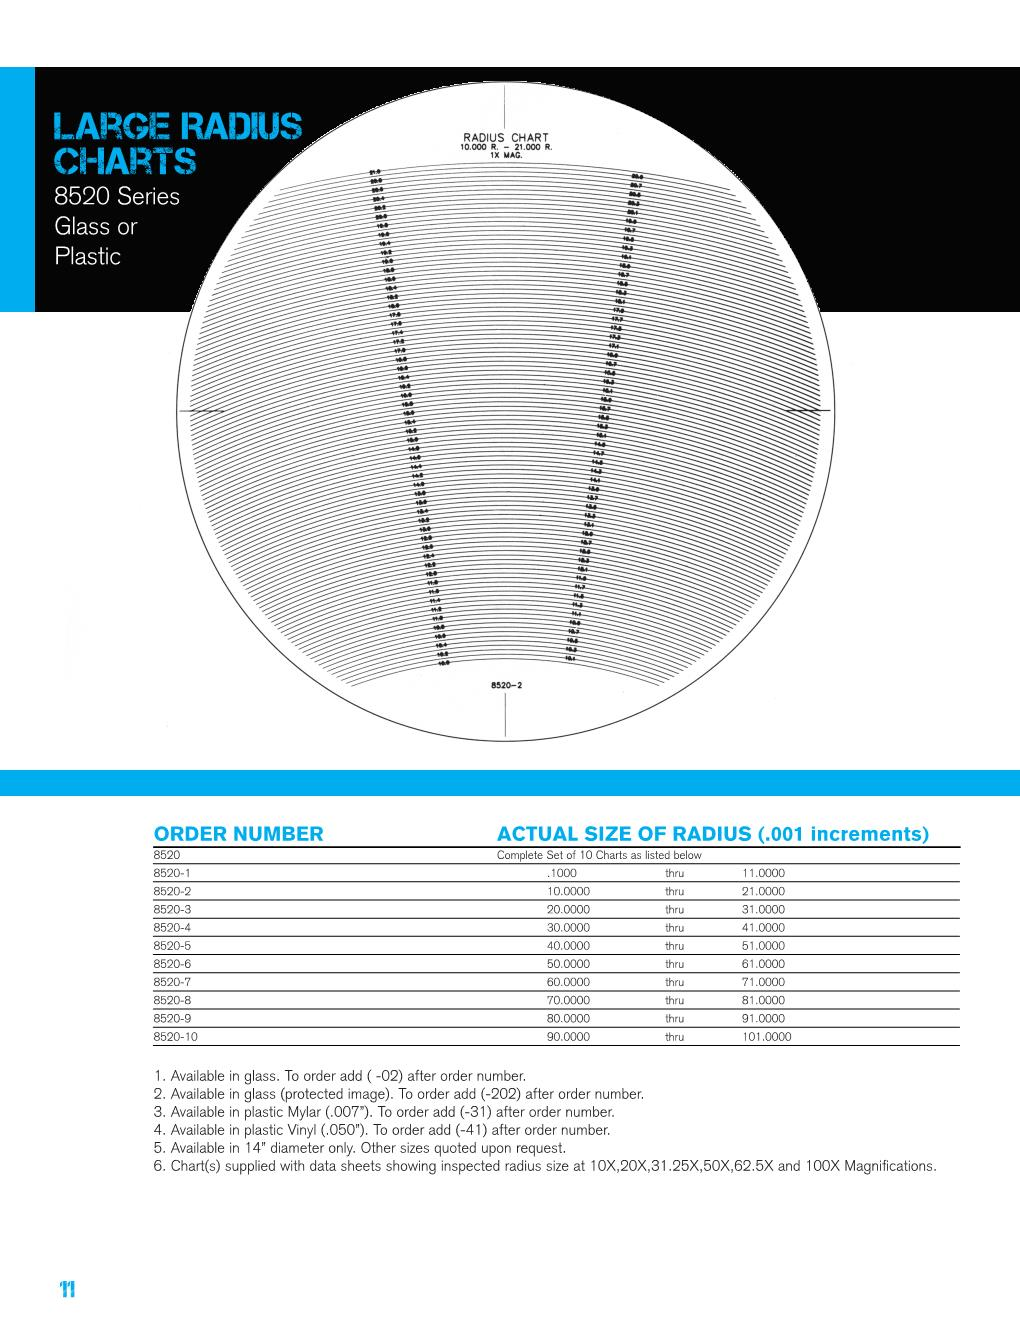 Unlimited Services Chart & Fixture Catalog 12.2018 FINAL Page 012.jpg